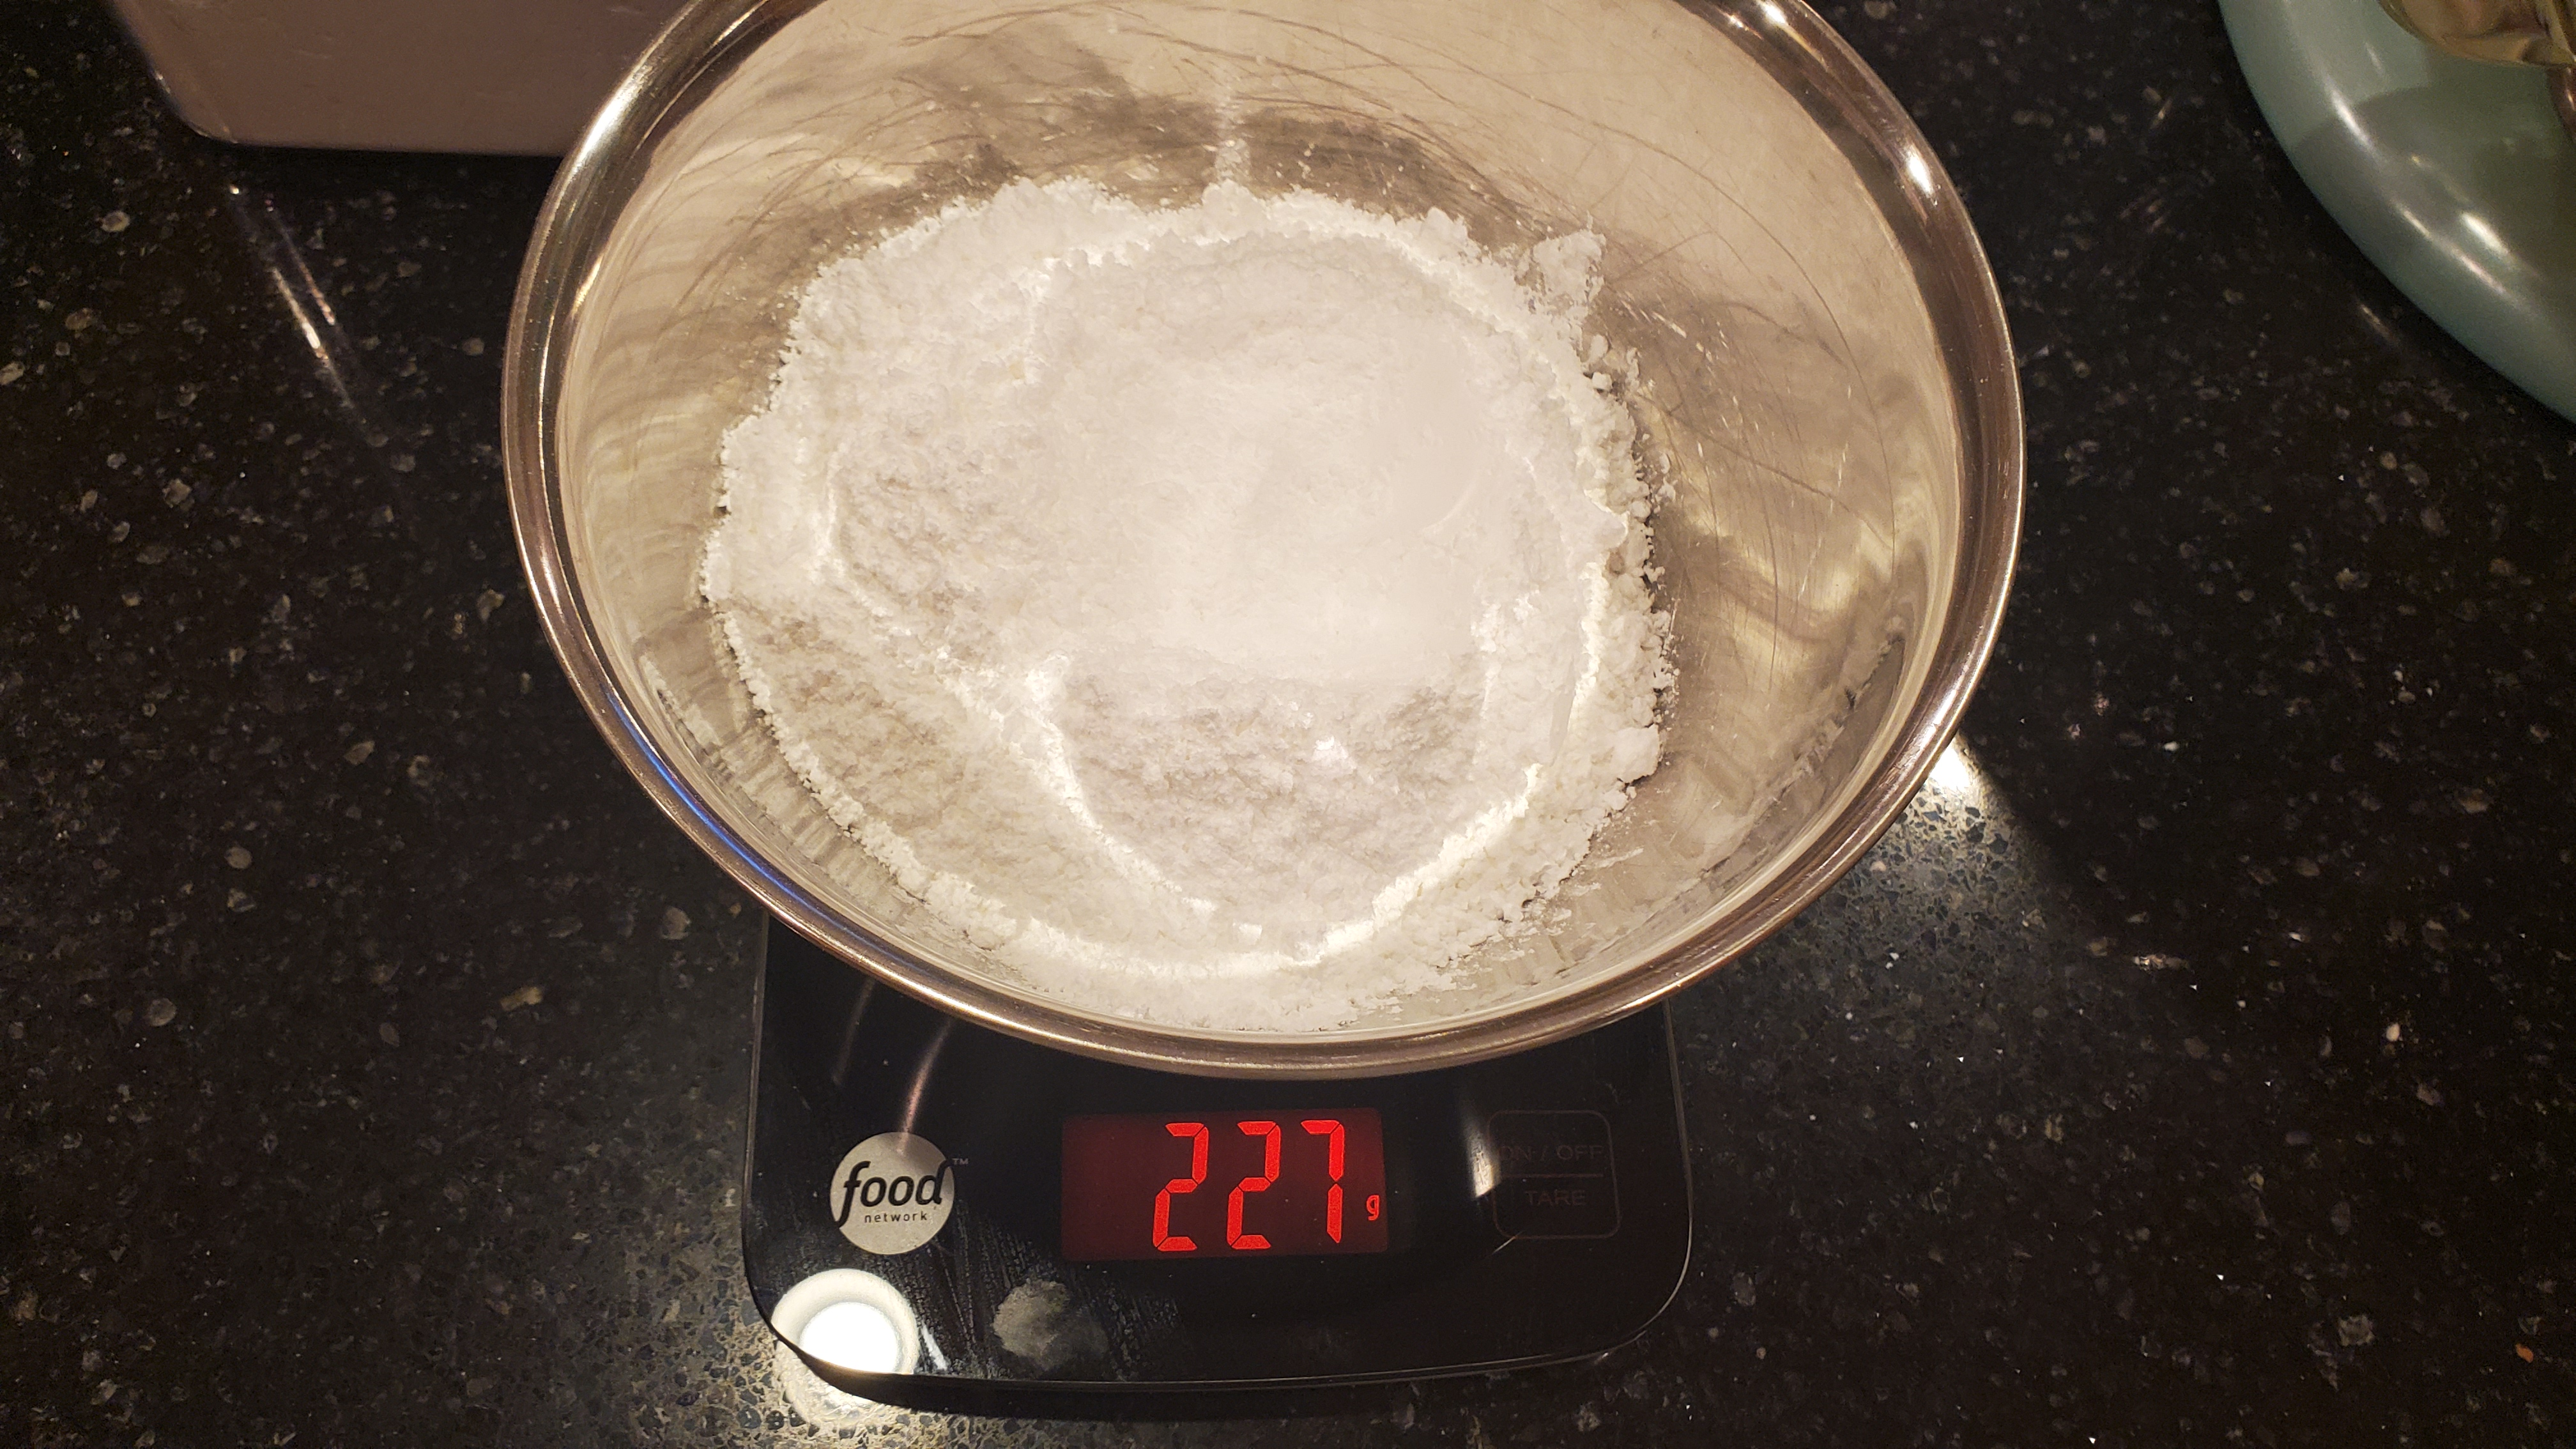 food network food scale weighing powdered sugar.